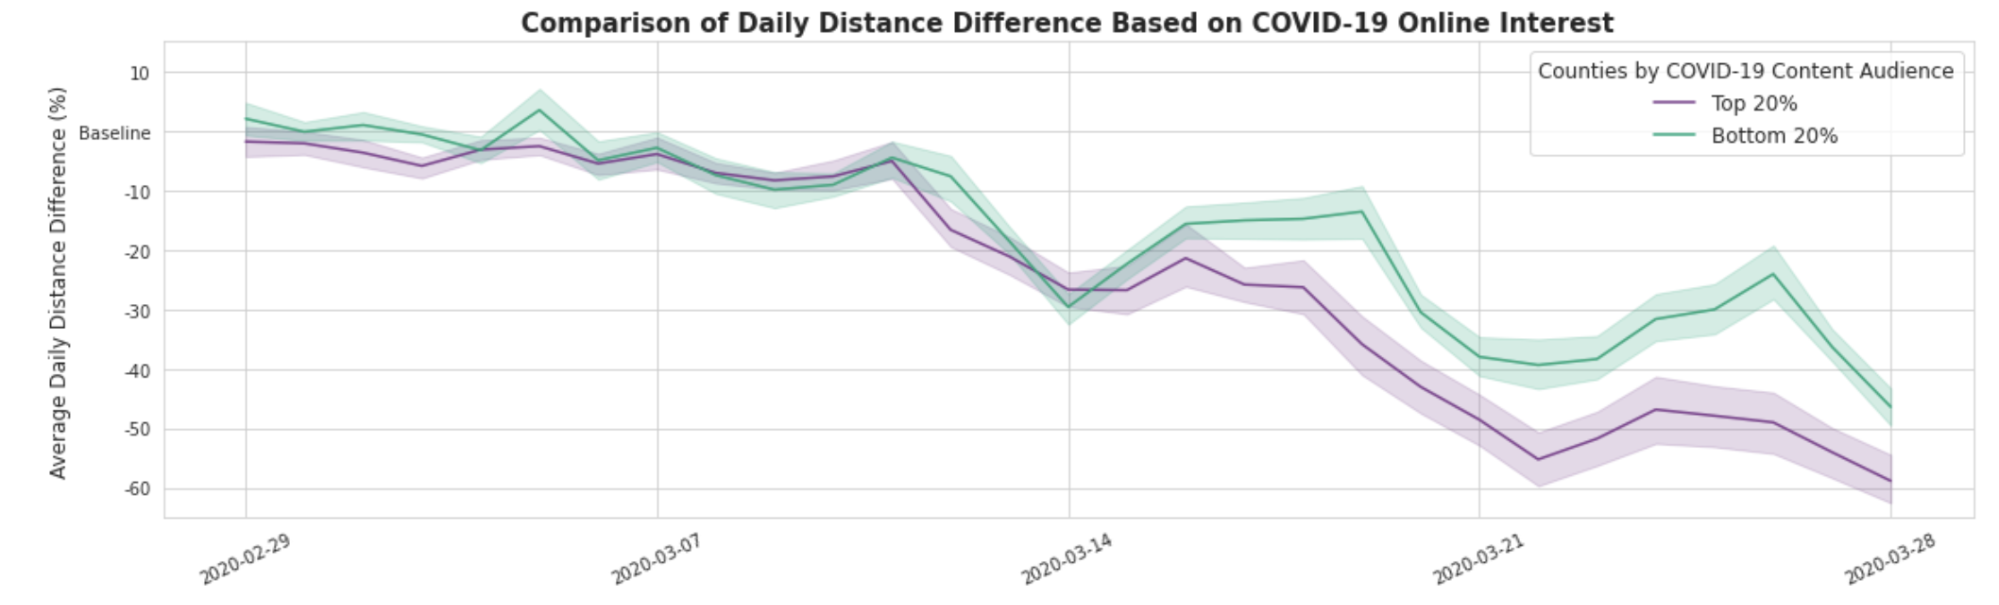 Chart showing comparison of daily distance difference based on COVID-19 online interest